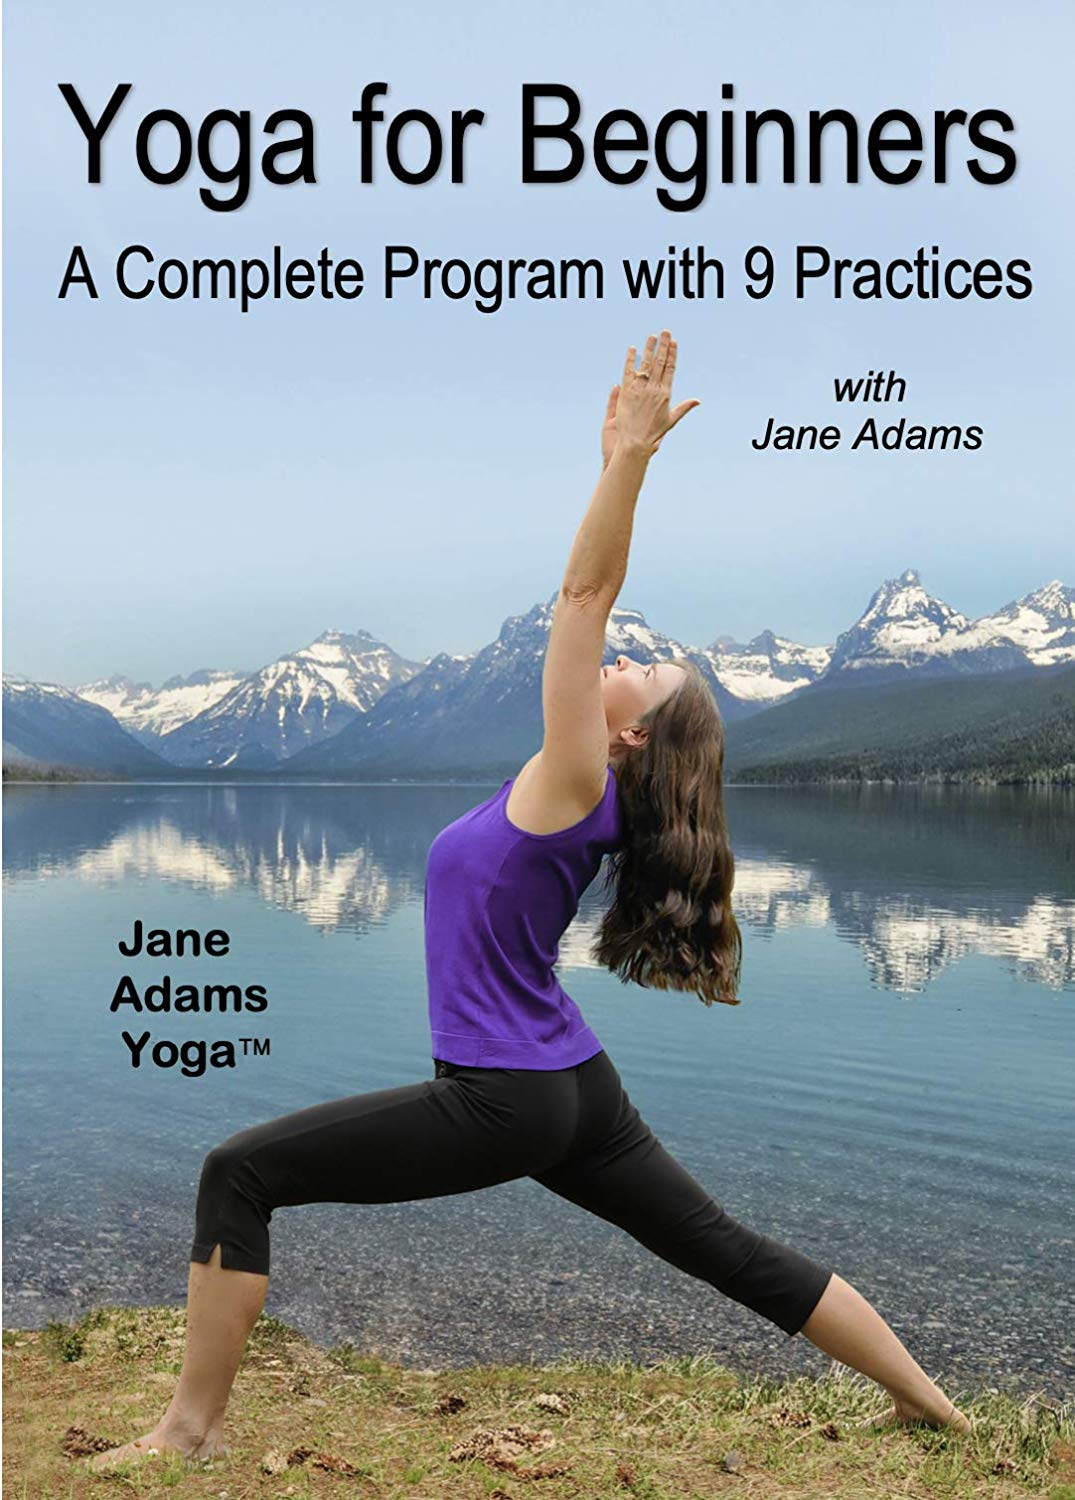 Yoga for Beginners: A Complete Program  | Best Yoga for Beginners DVDs